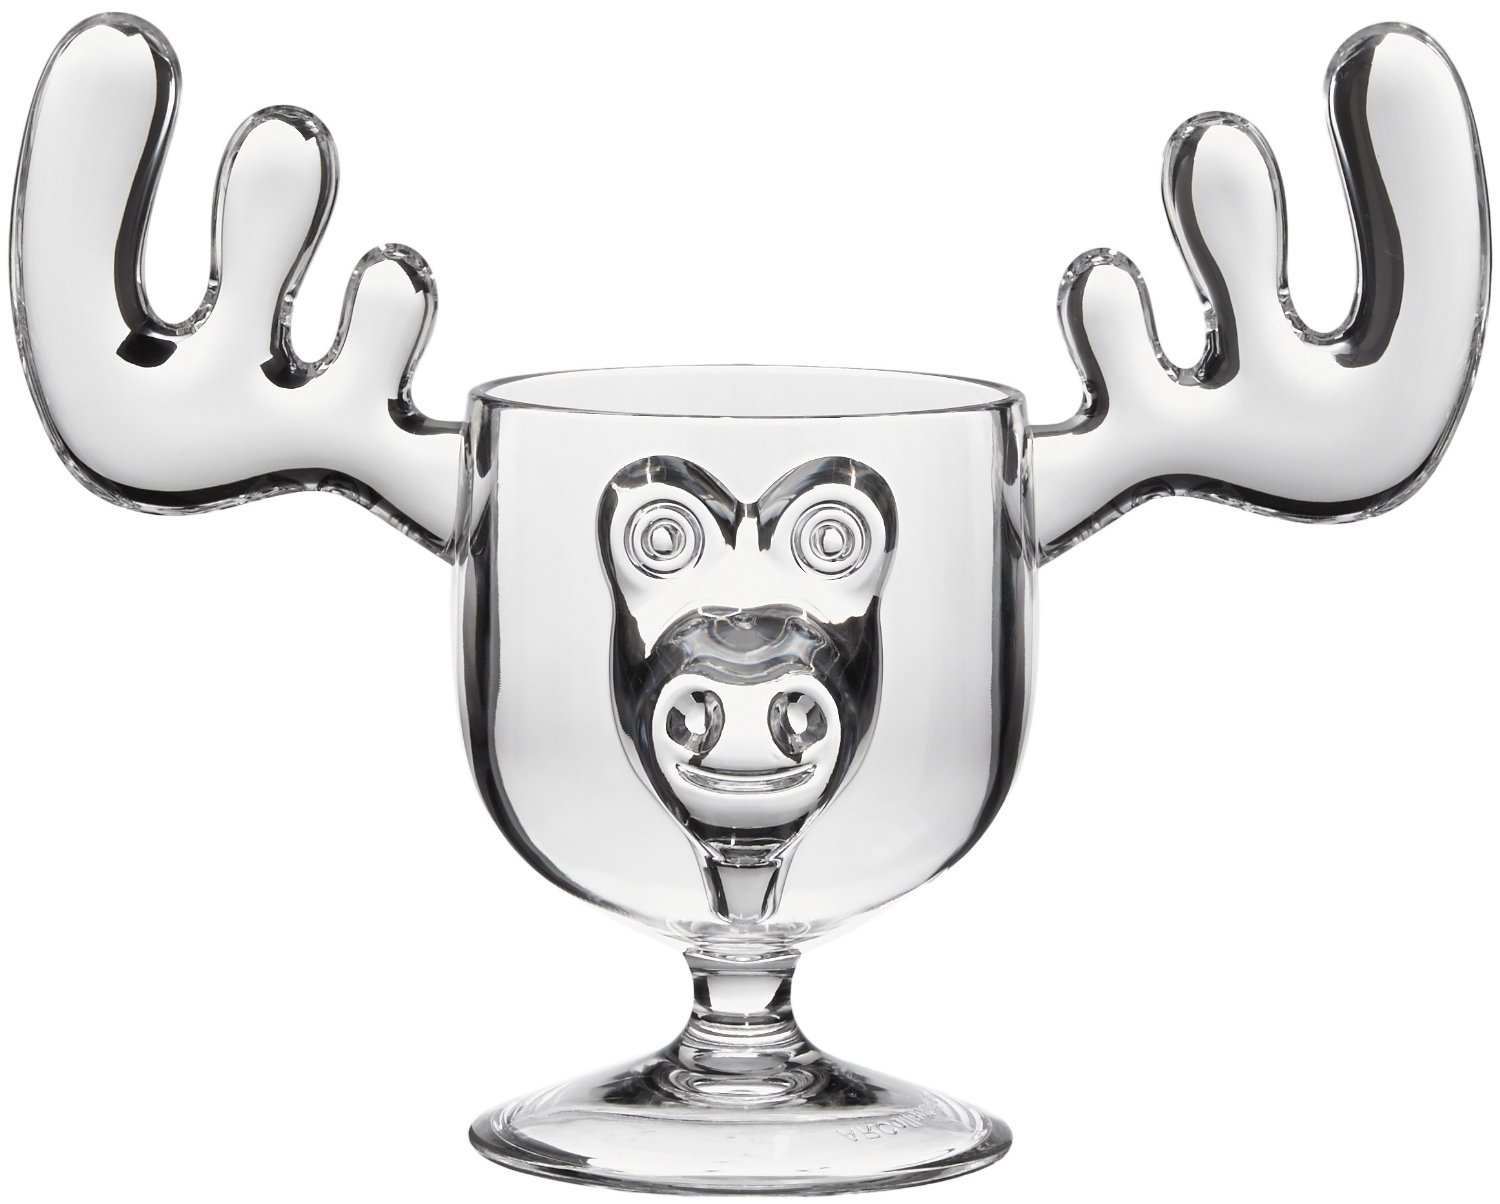 Christmas Moose Mug Punch Bowl Set with 8 Moose Mugs - Safer Than Glass